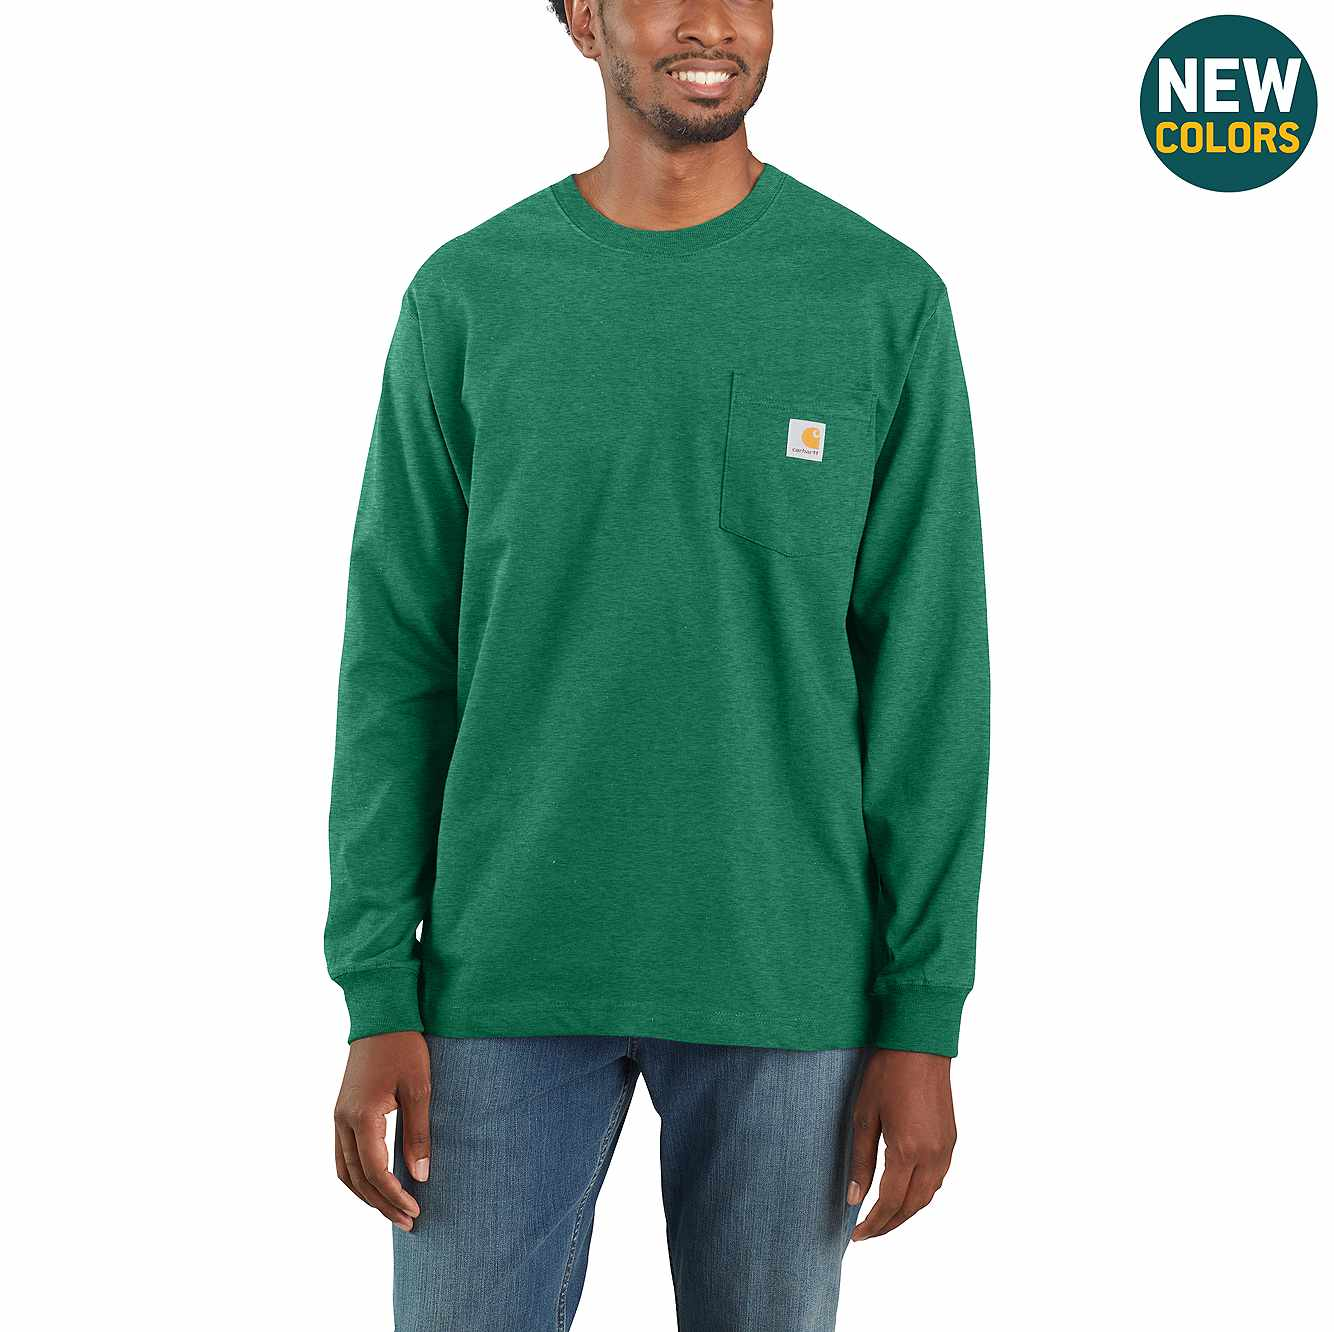 Picture of Loose Fit Heavyweight Long-Sleeve Pocket T-Shirt in North Woods Heather